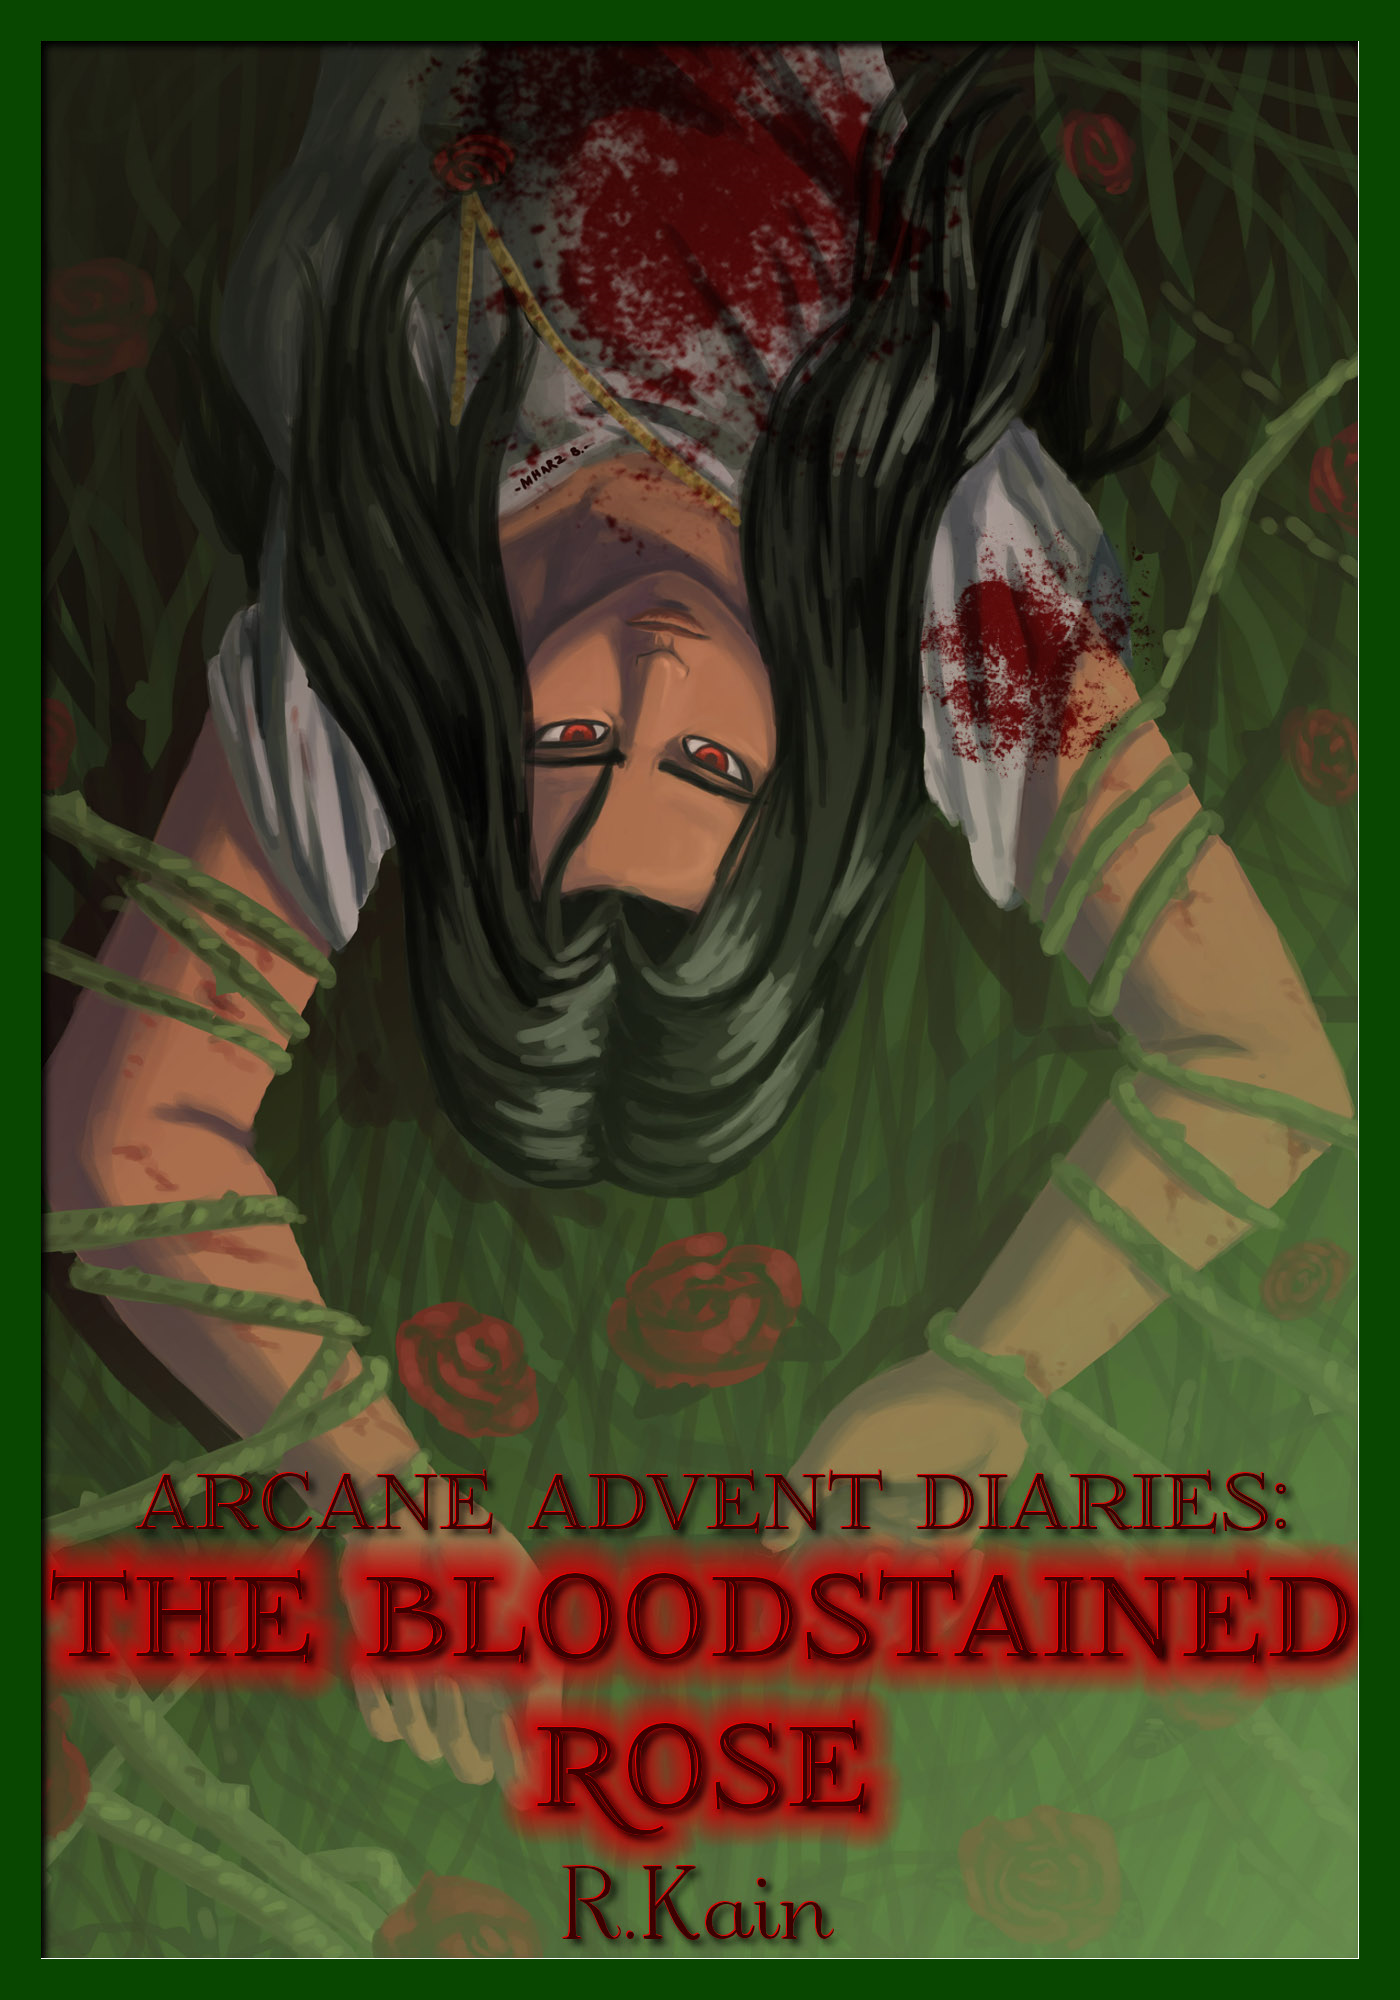 The Bloodstained Rose